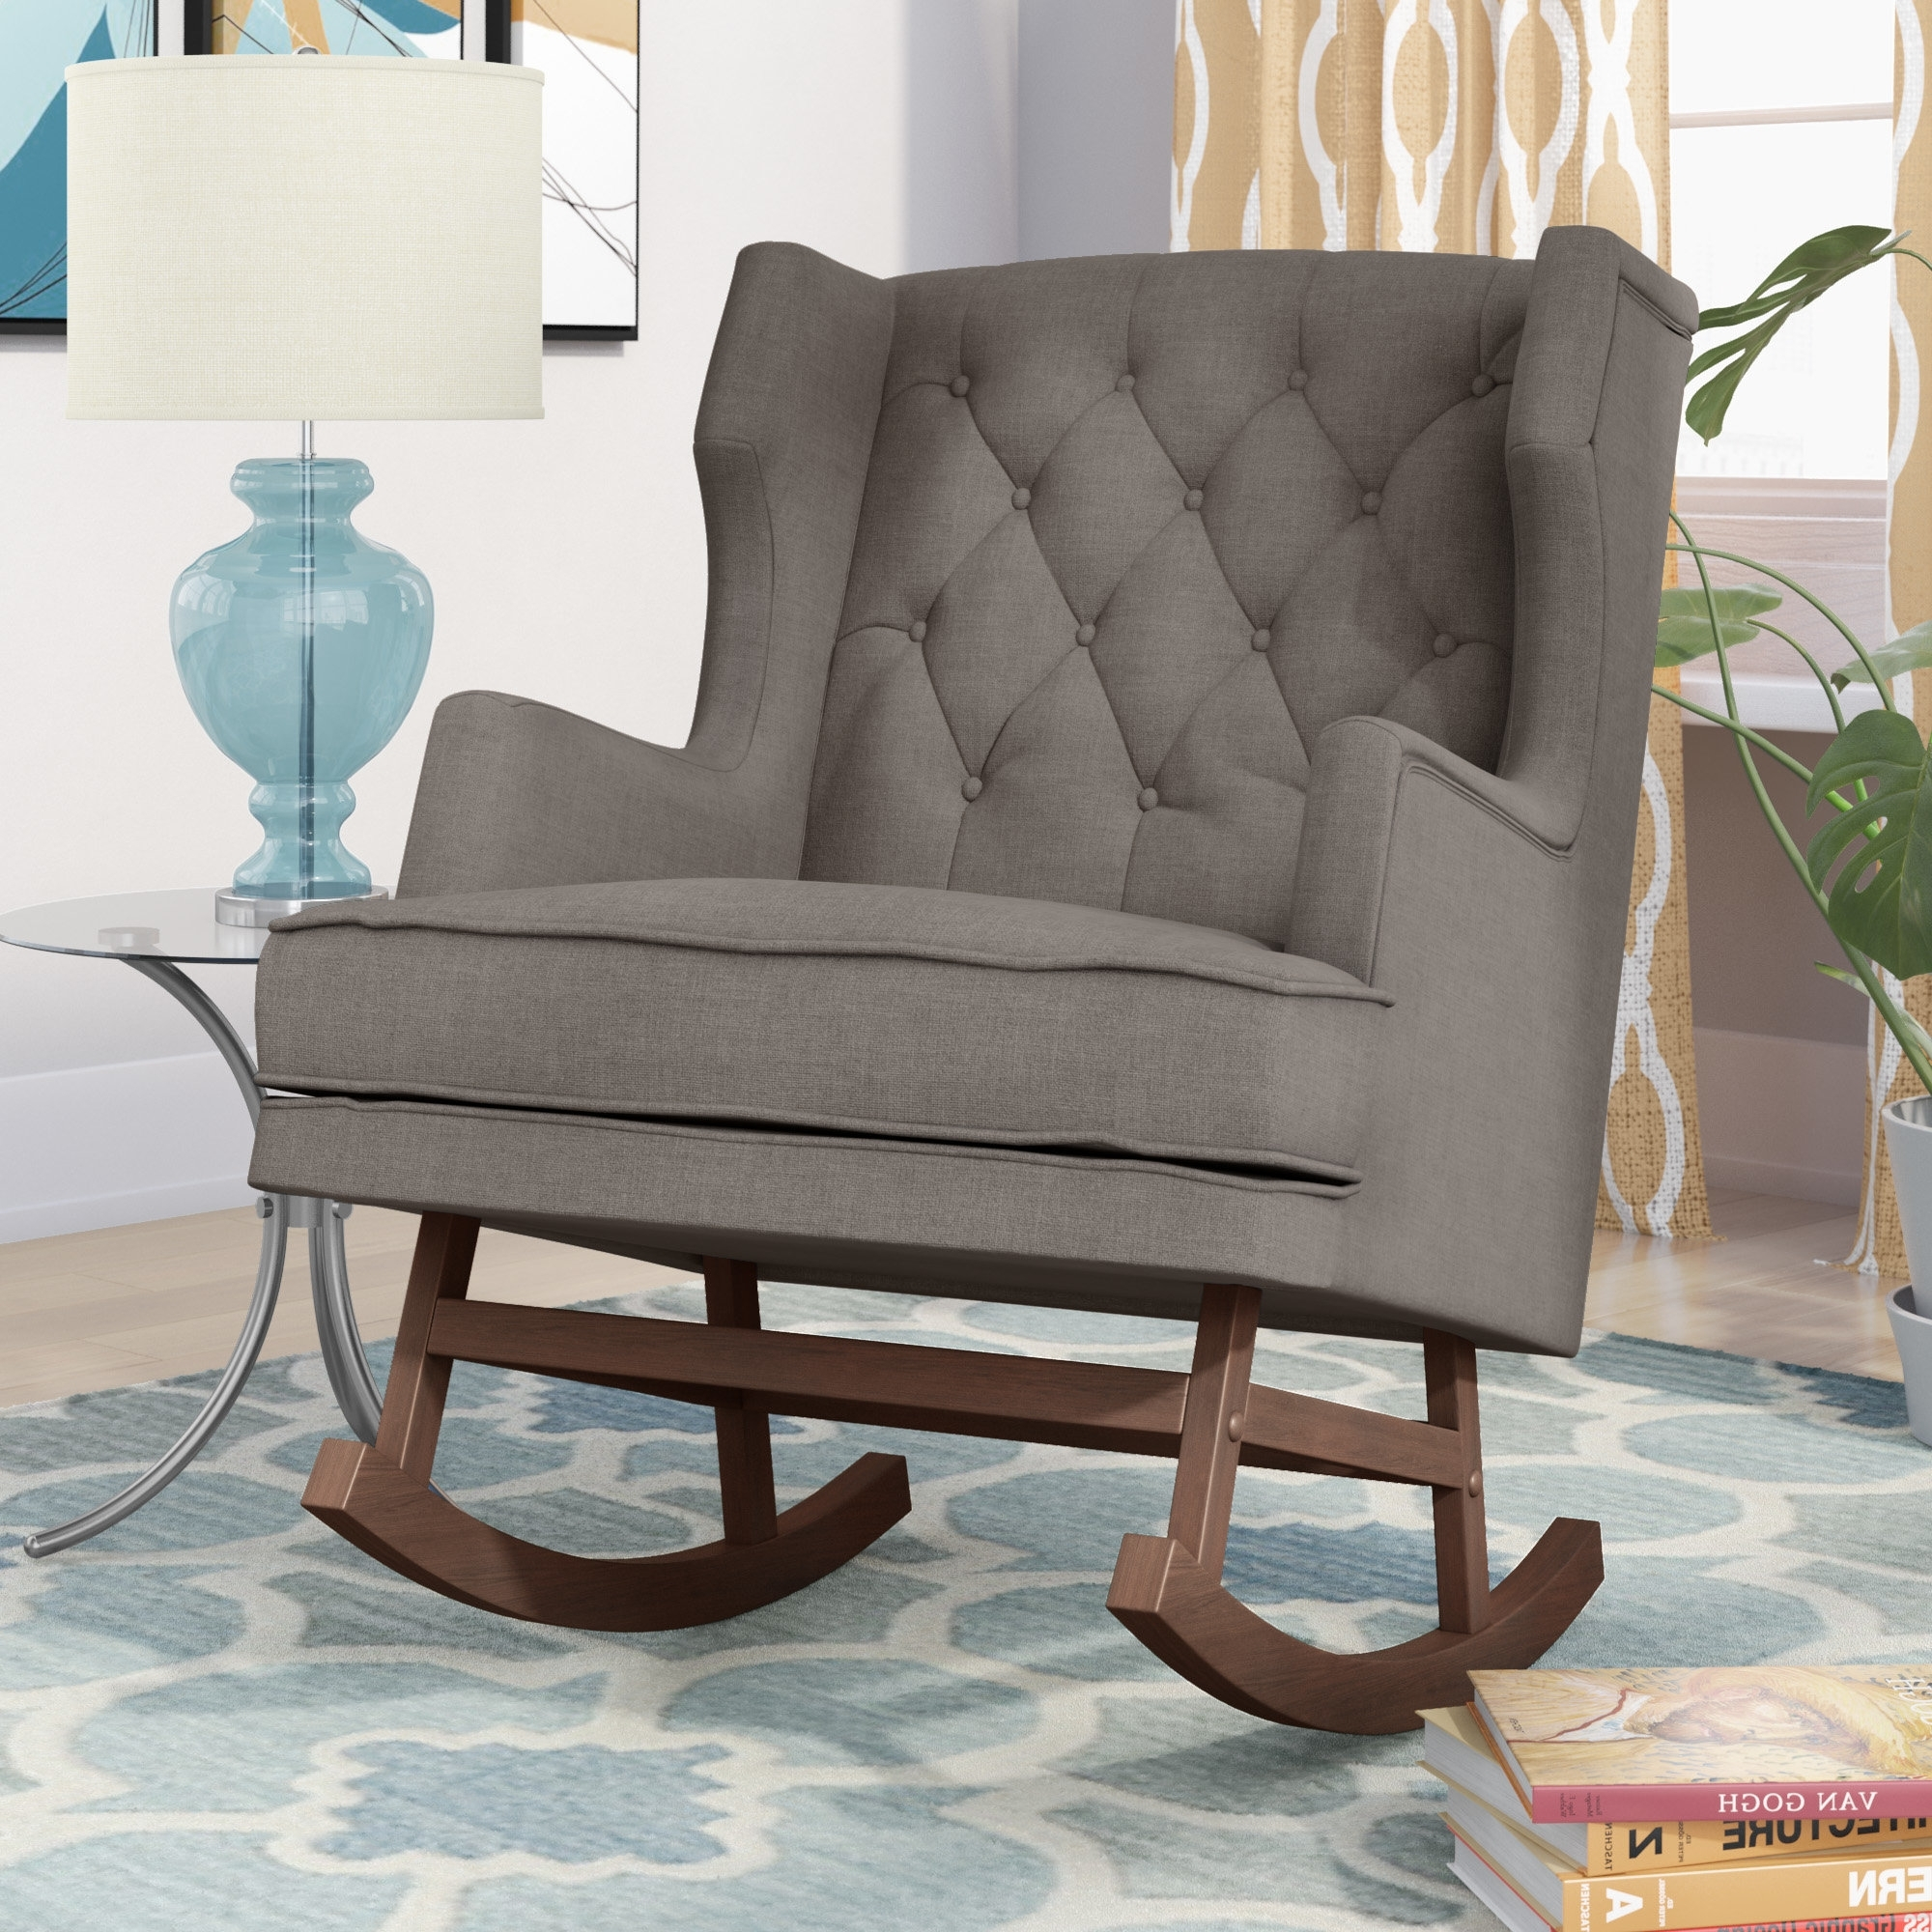 Wayfair Regarding Rocking Chairs For Living Room (View 10 of 15)